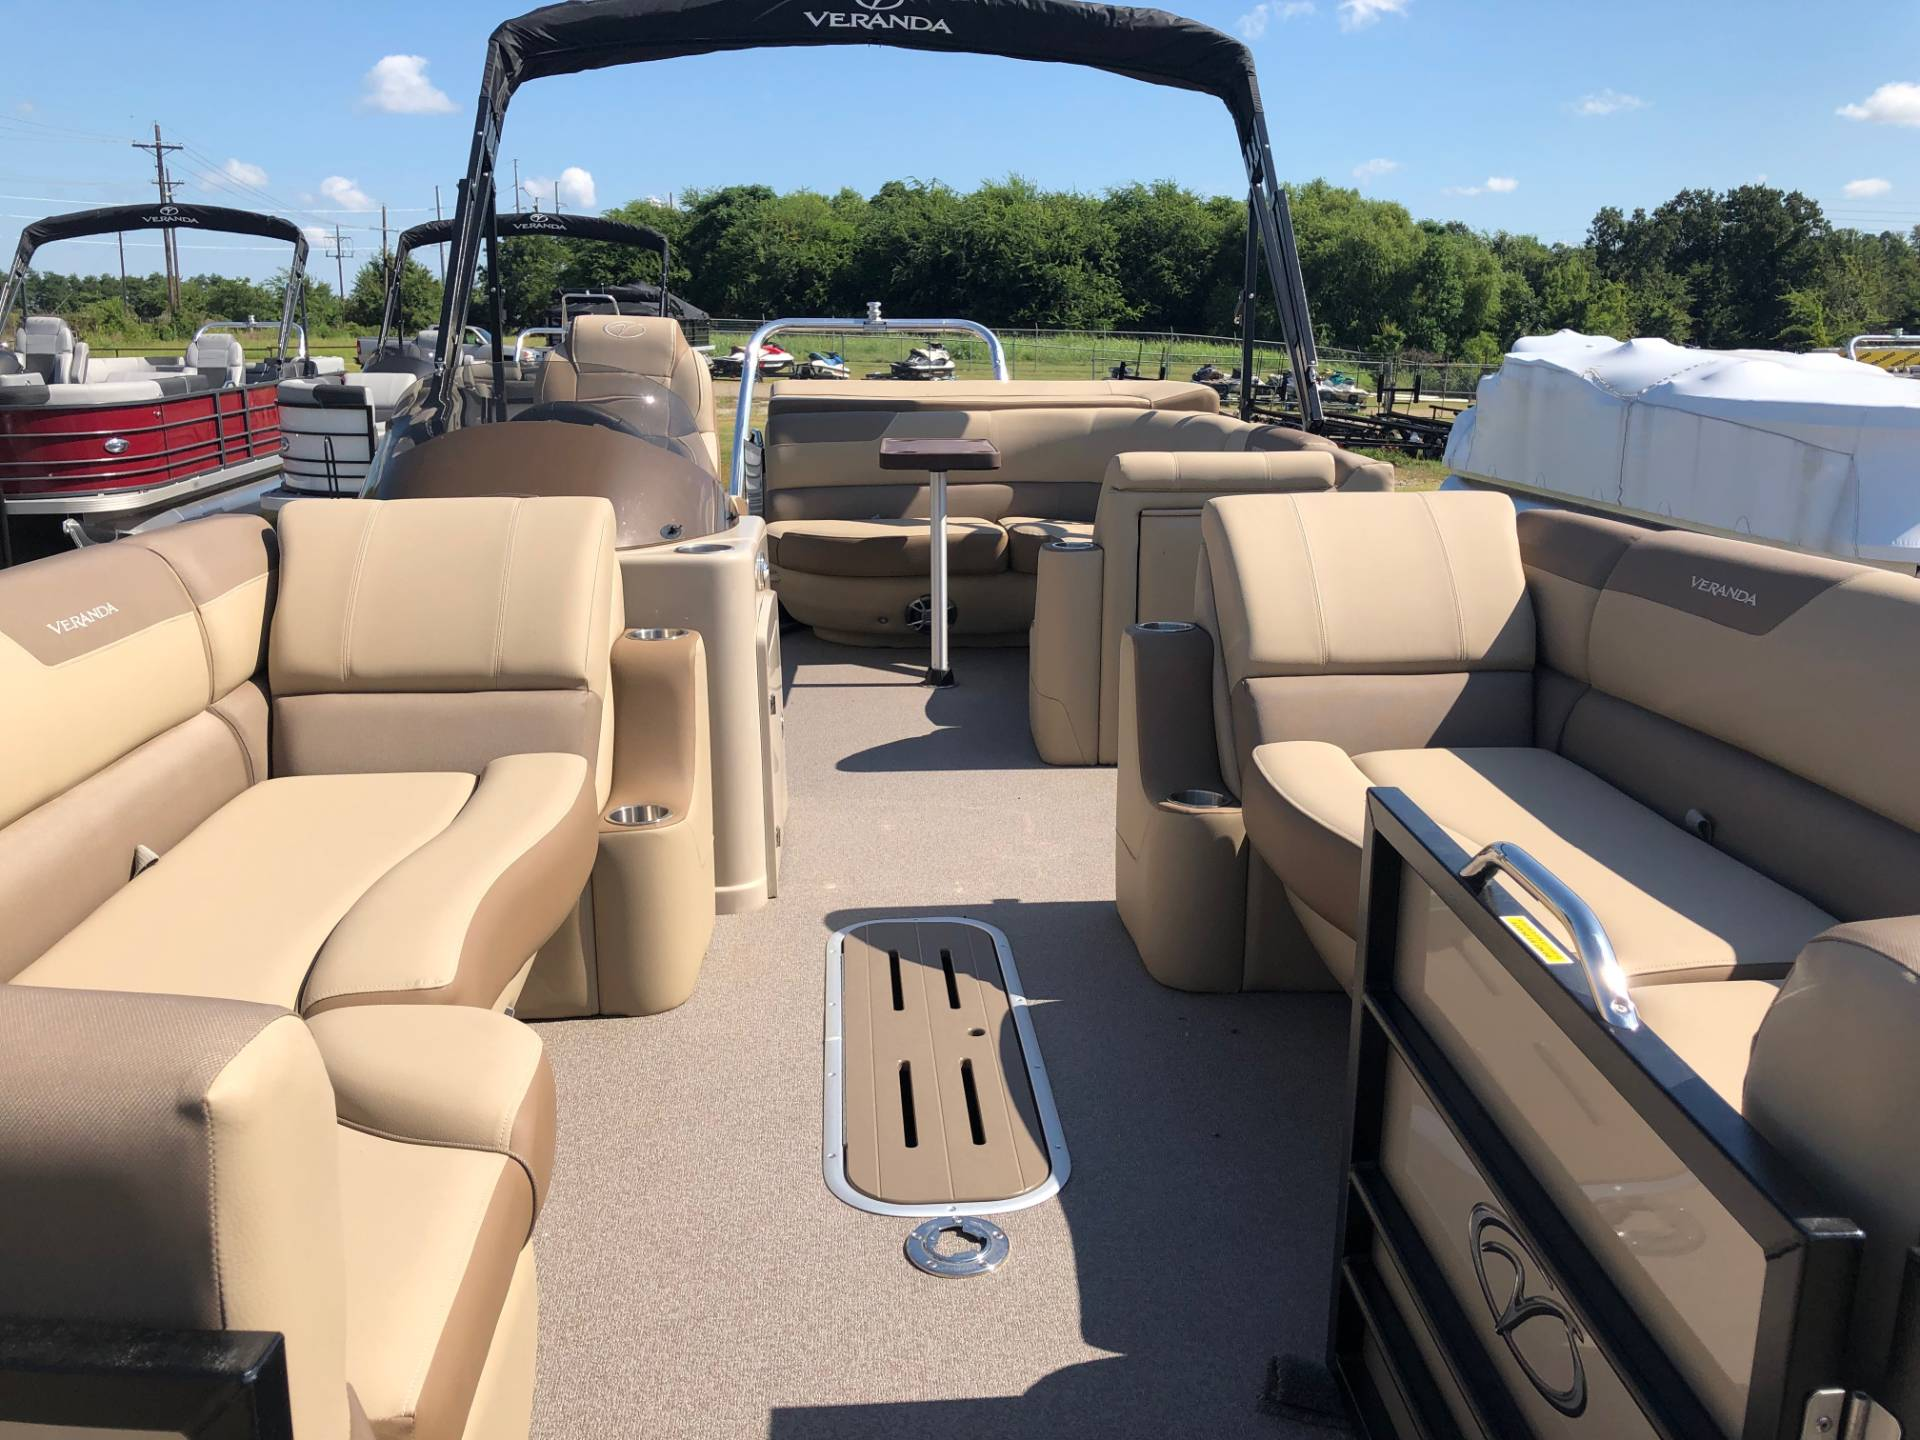 2019 Veranda Relax VR22L in Mount Pleasant, Texas - Photo 3